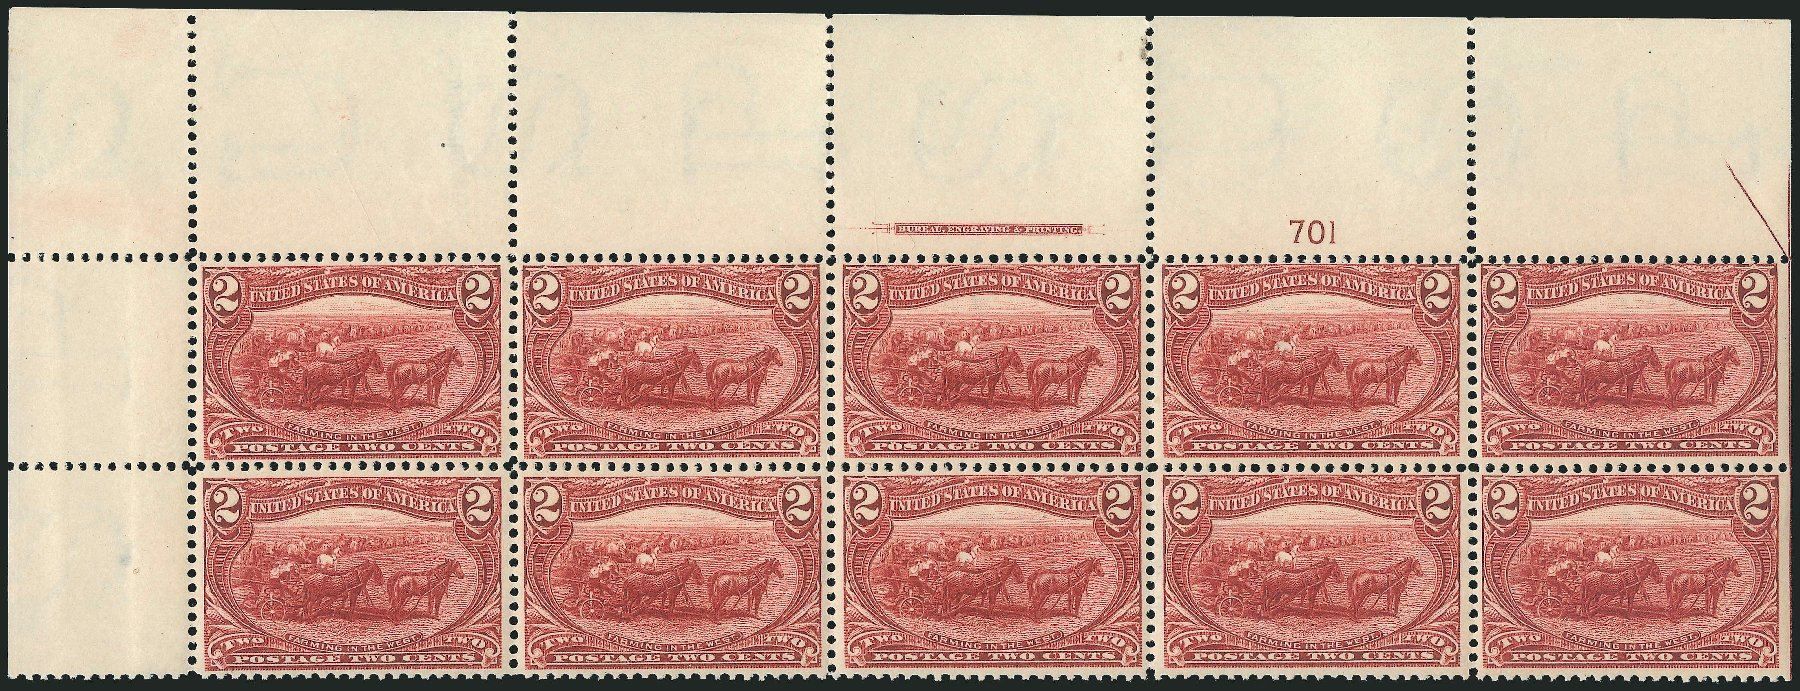 Cost of US Stamp Scott Catalog #286 - 2c 1898 Trans Mississippi Exposition. Robert Siegel Auction Galleries, Apr 2015, Sale 1096, Lot 503